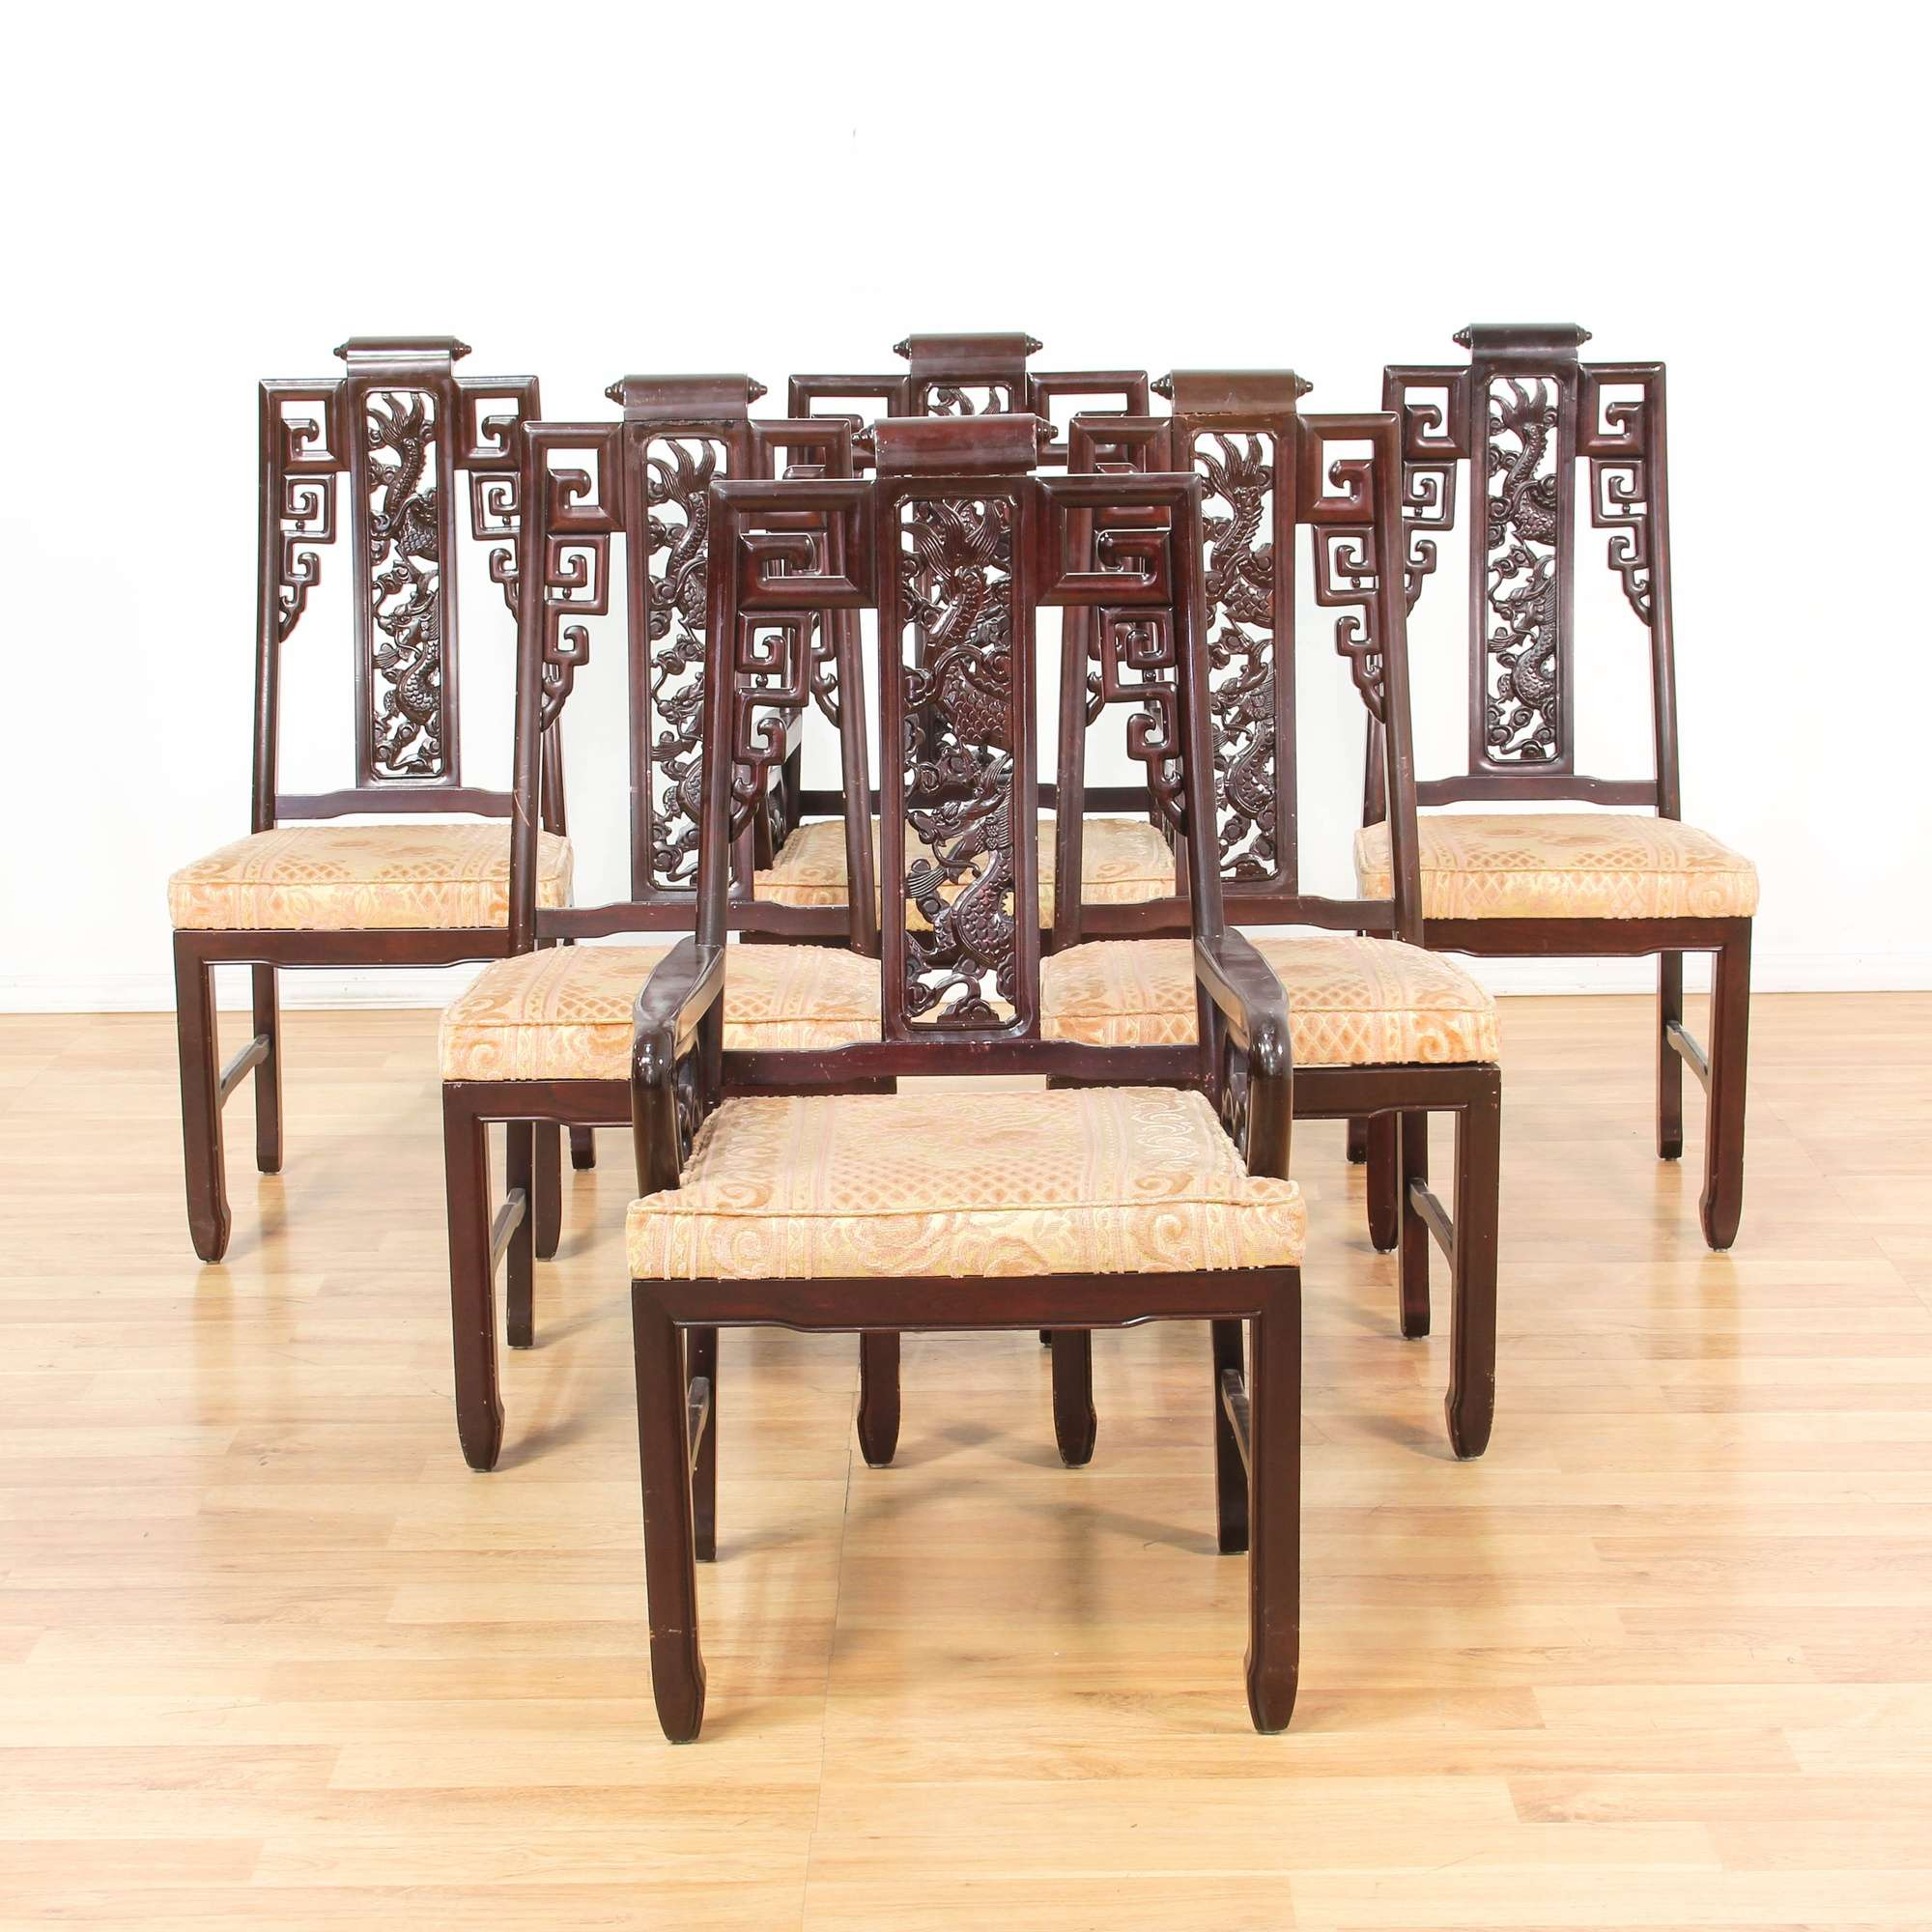 Set of 6 Carved Asian Chinese Dining Chairs